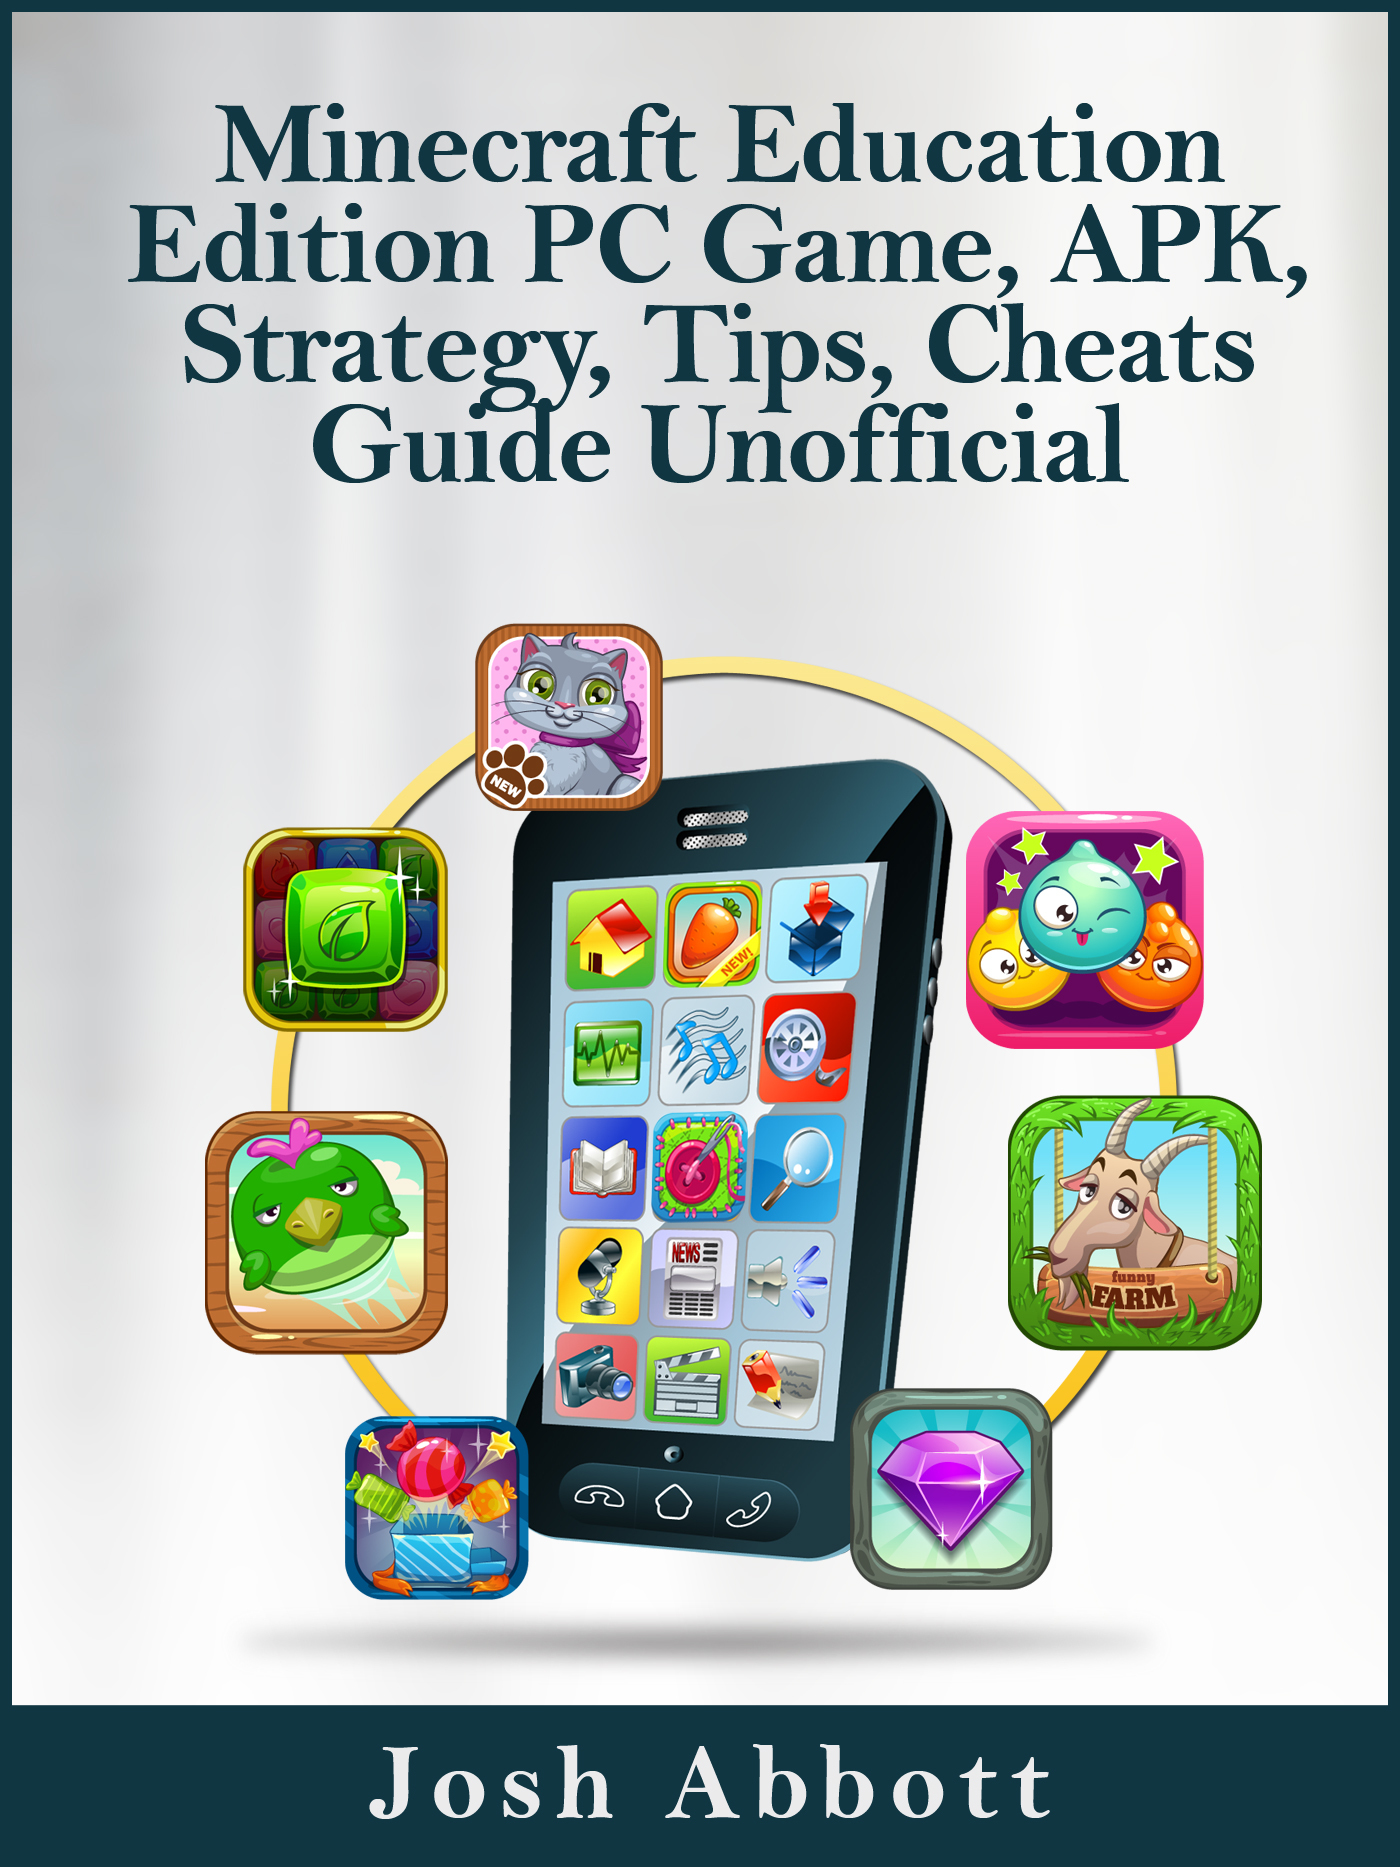 Minecraft Education Edition PC Game, APK, Strategy, Tips, Cheats Guide Unofficial